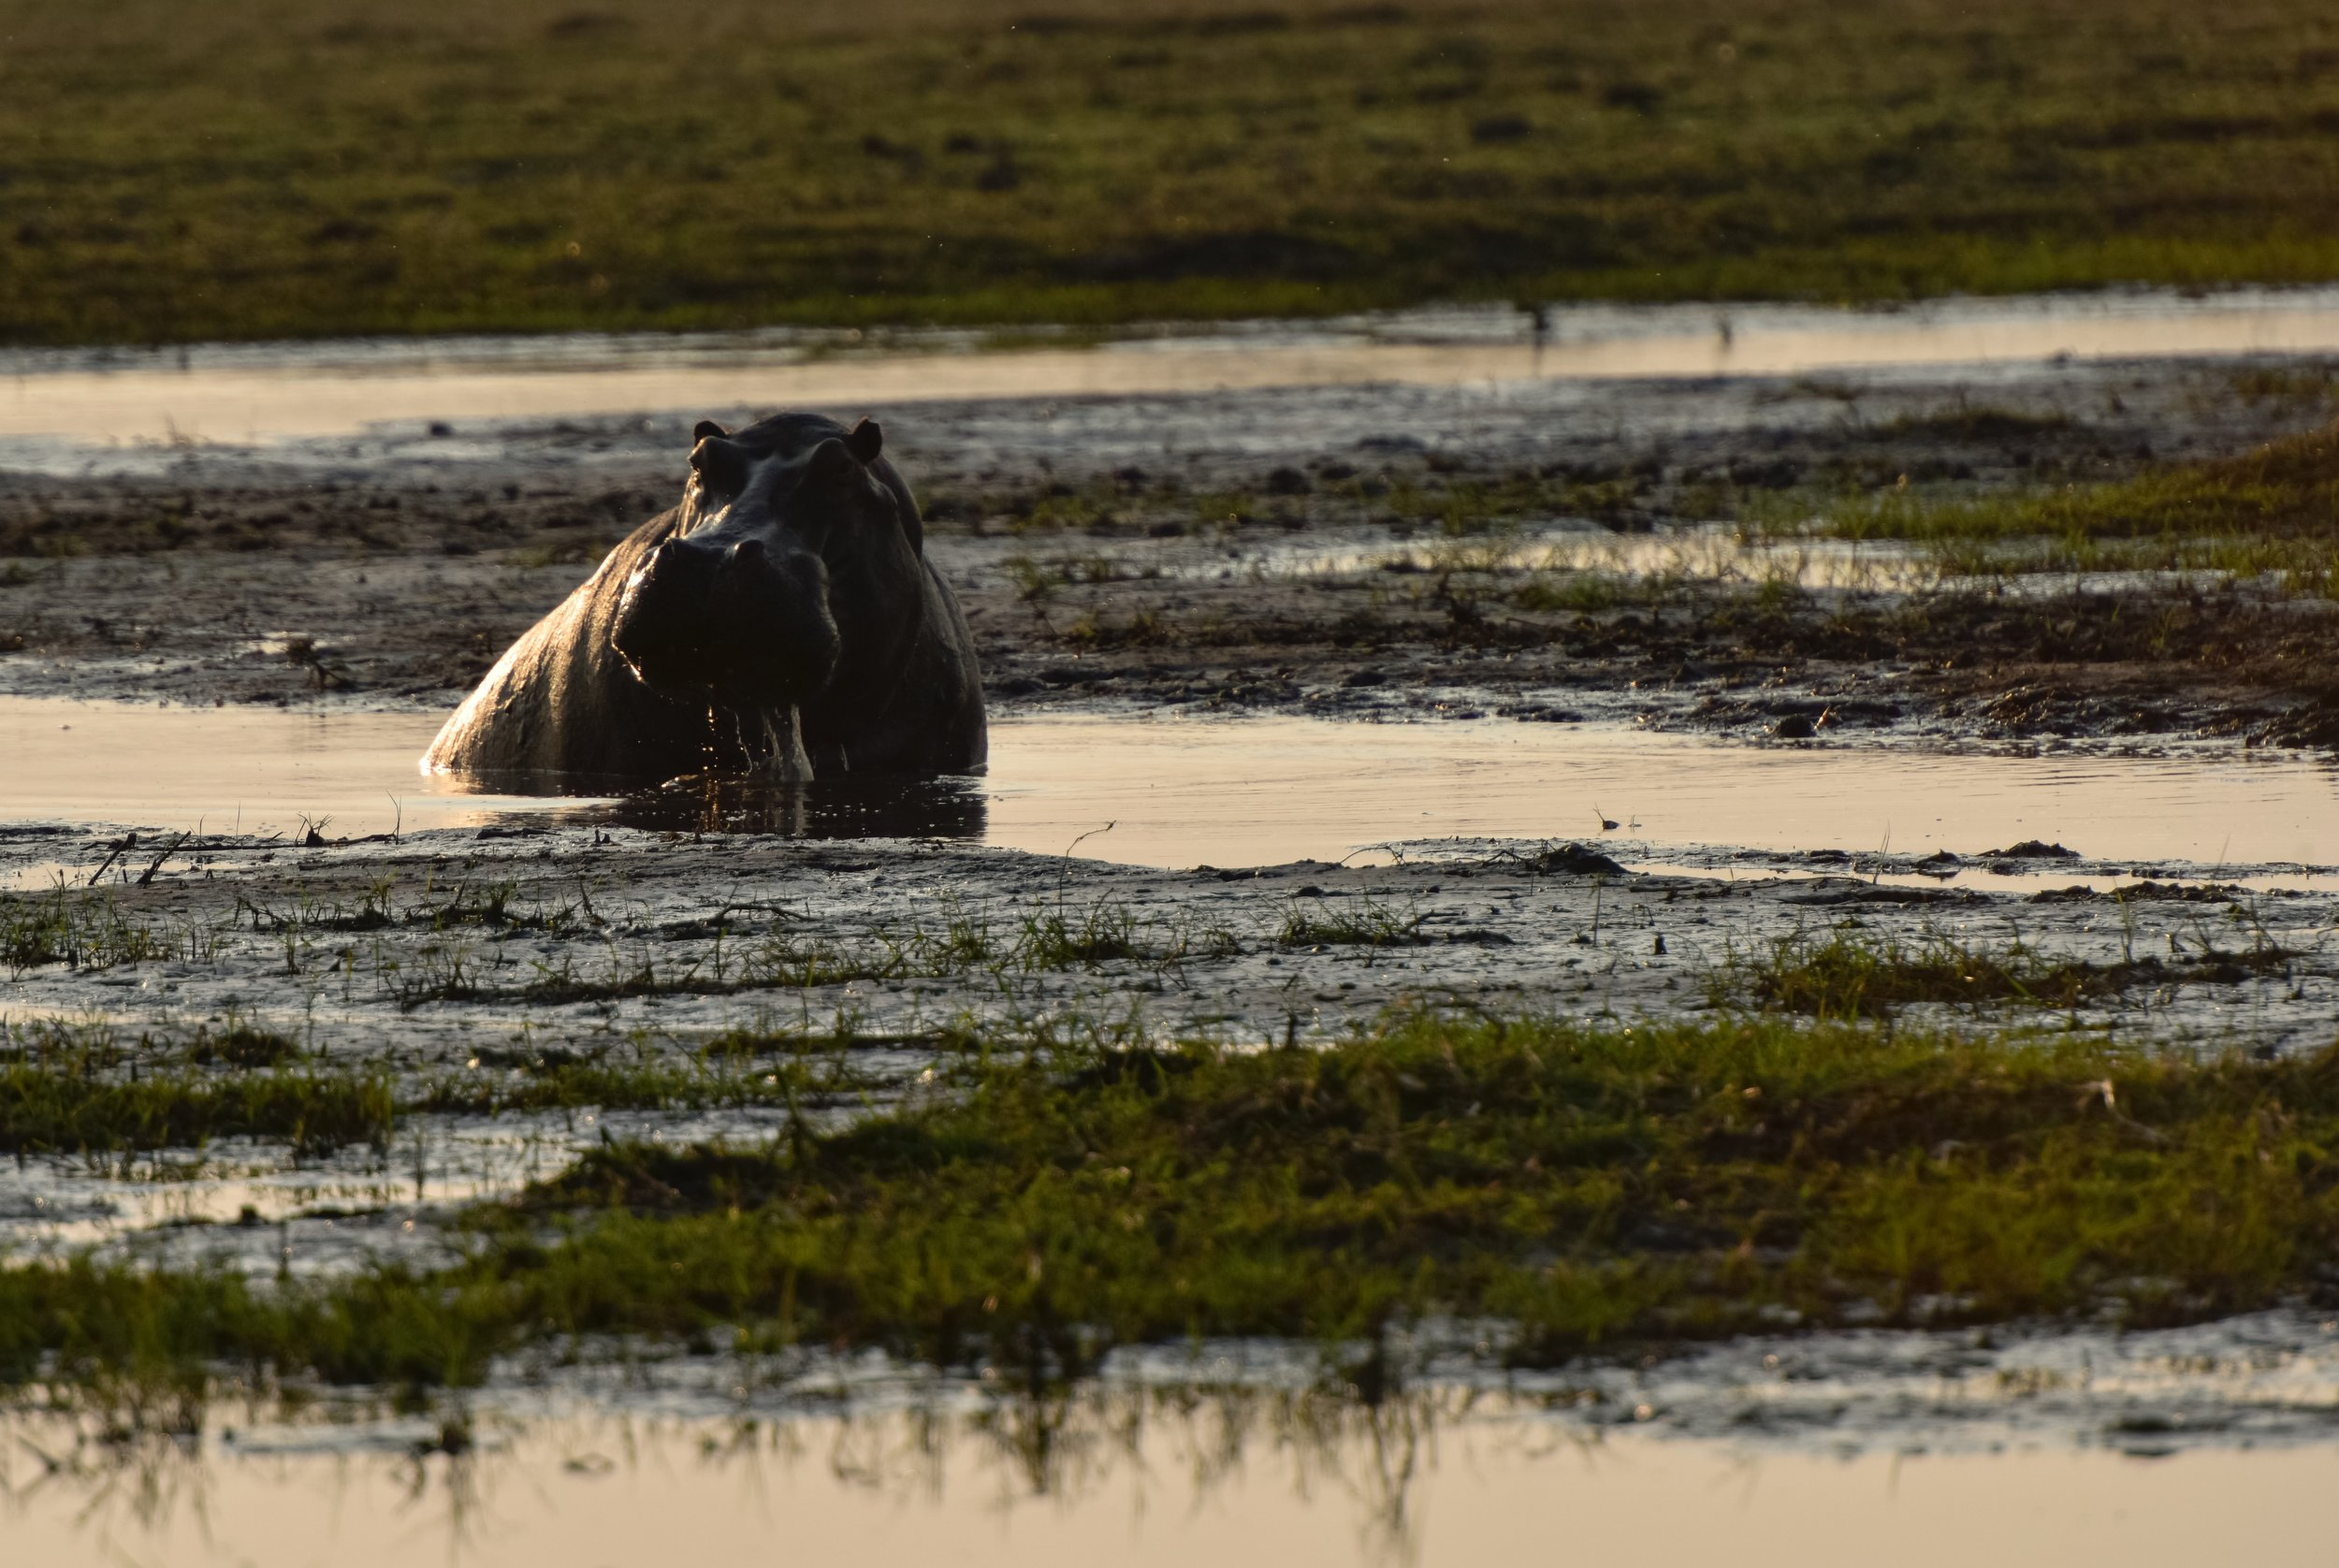 Hippos are hard to photograph.